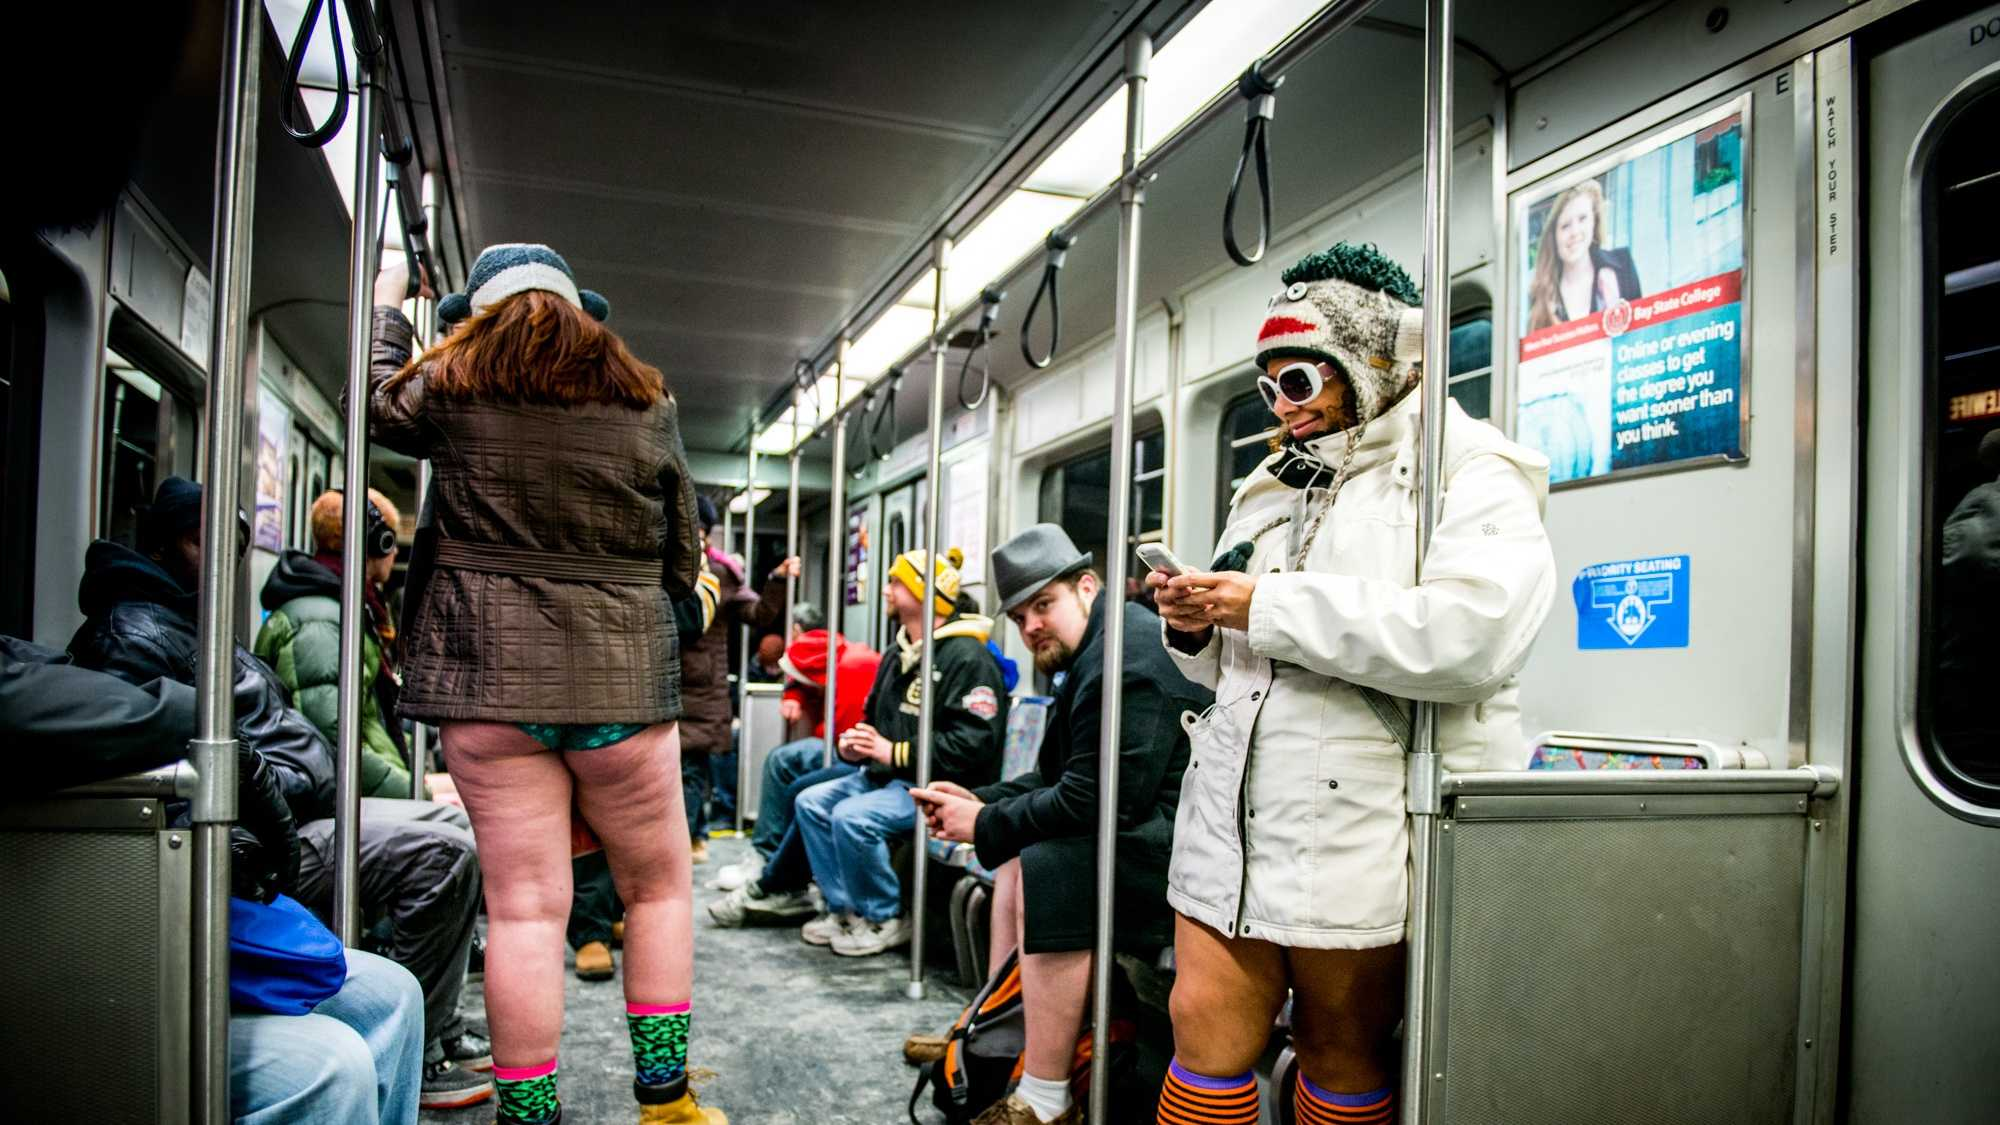 The 14th annual No Pants Subway ride was held over the weekend.  All photos courtesy: Alyssa Greenberg / Via alyssagreenbergphotography.com